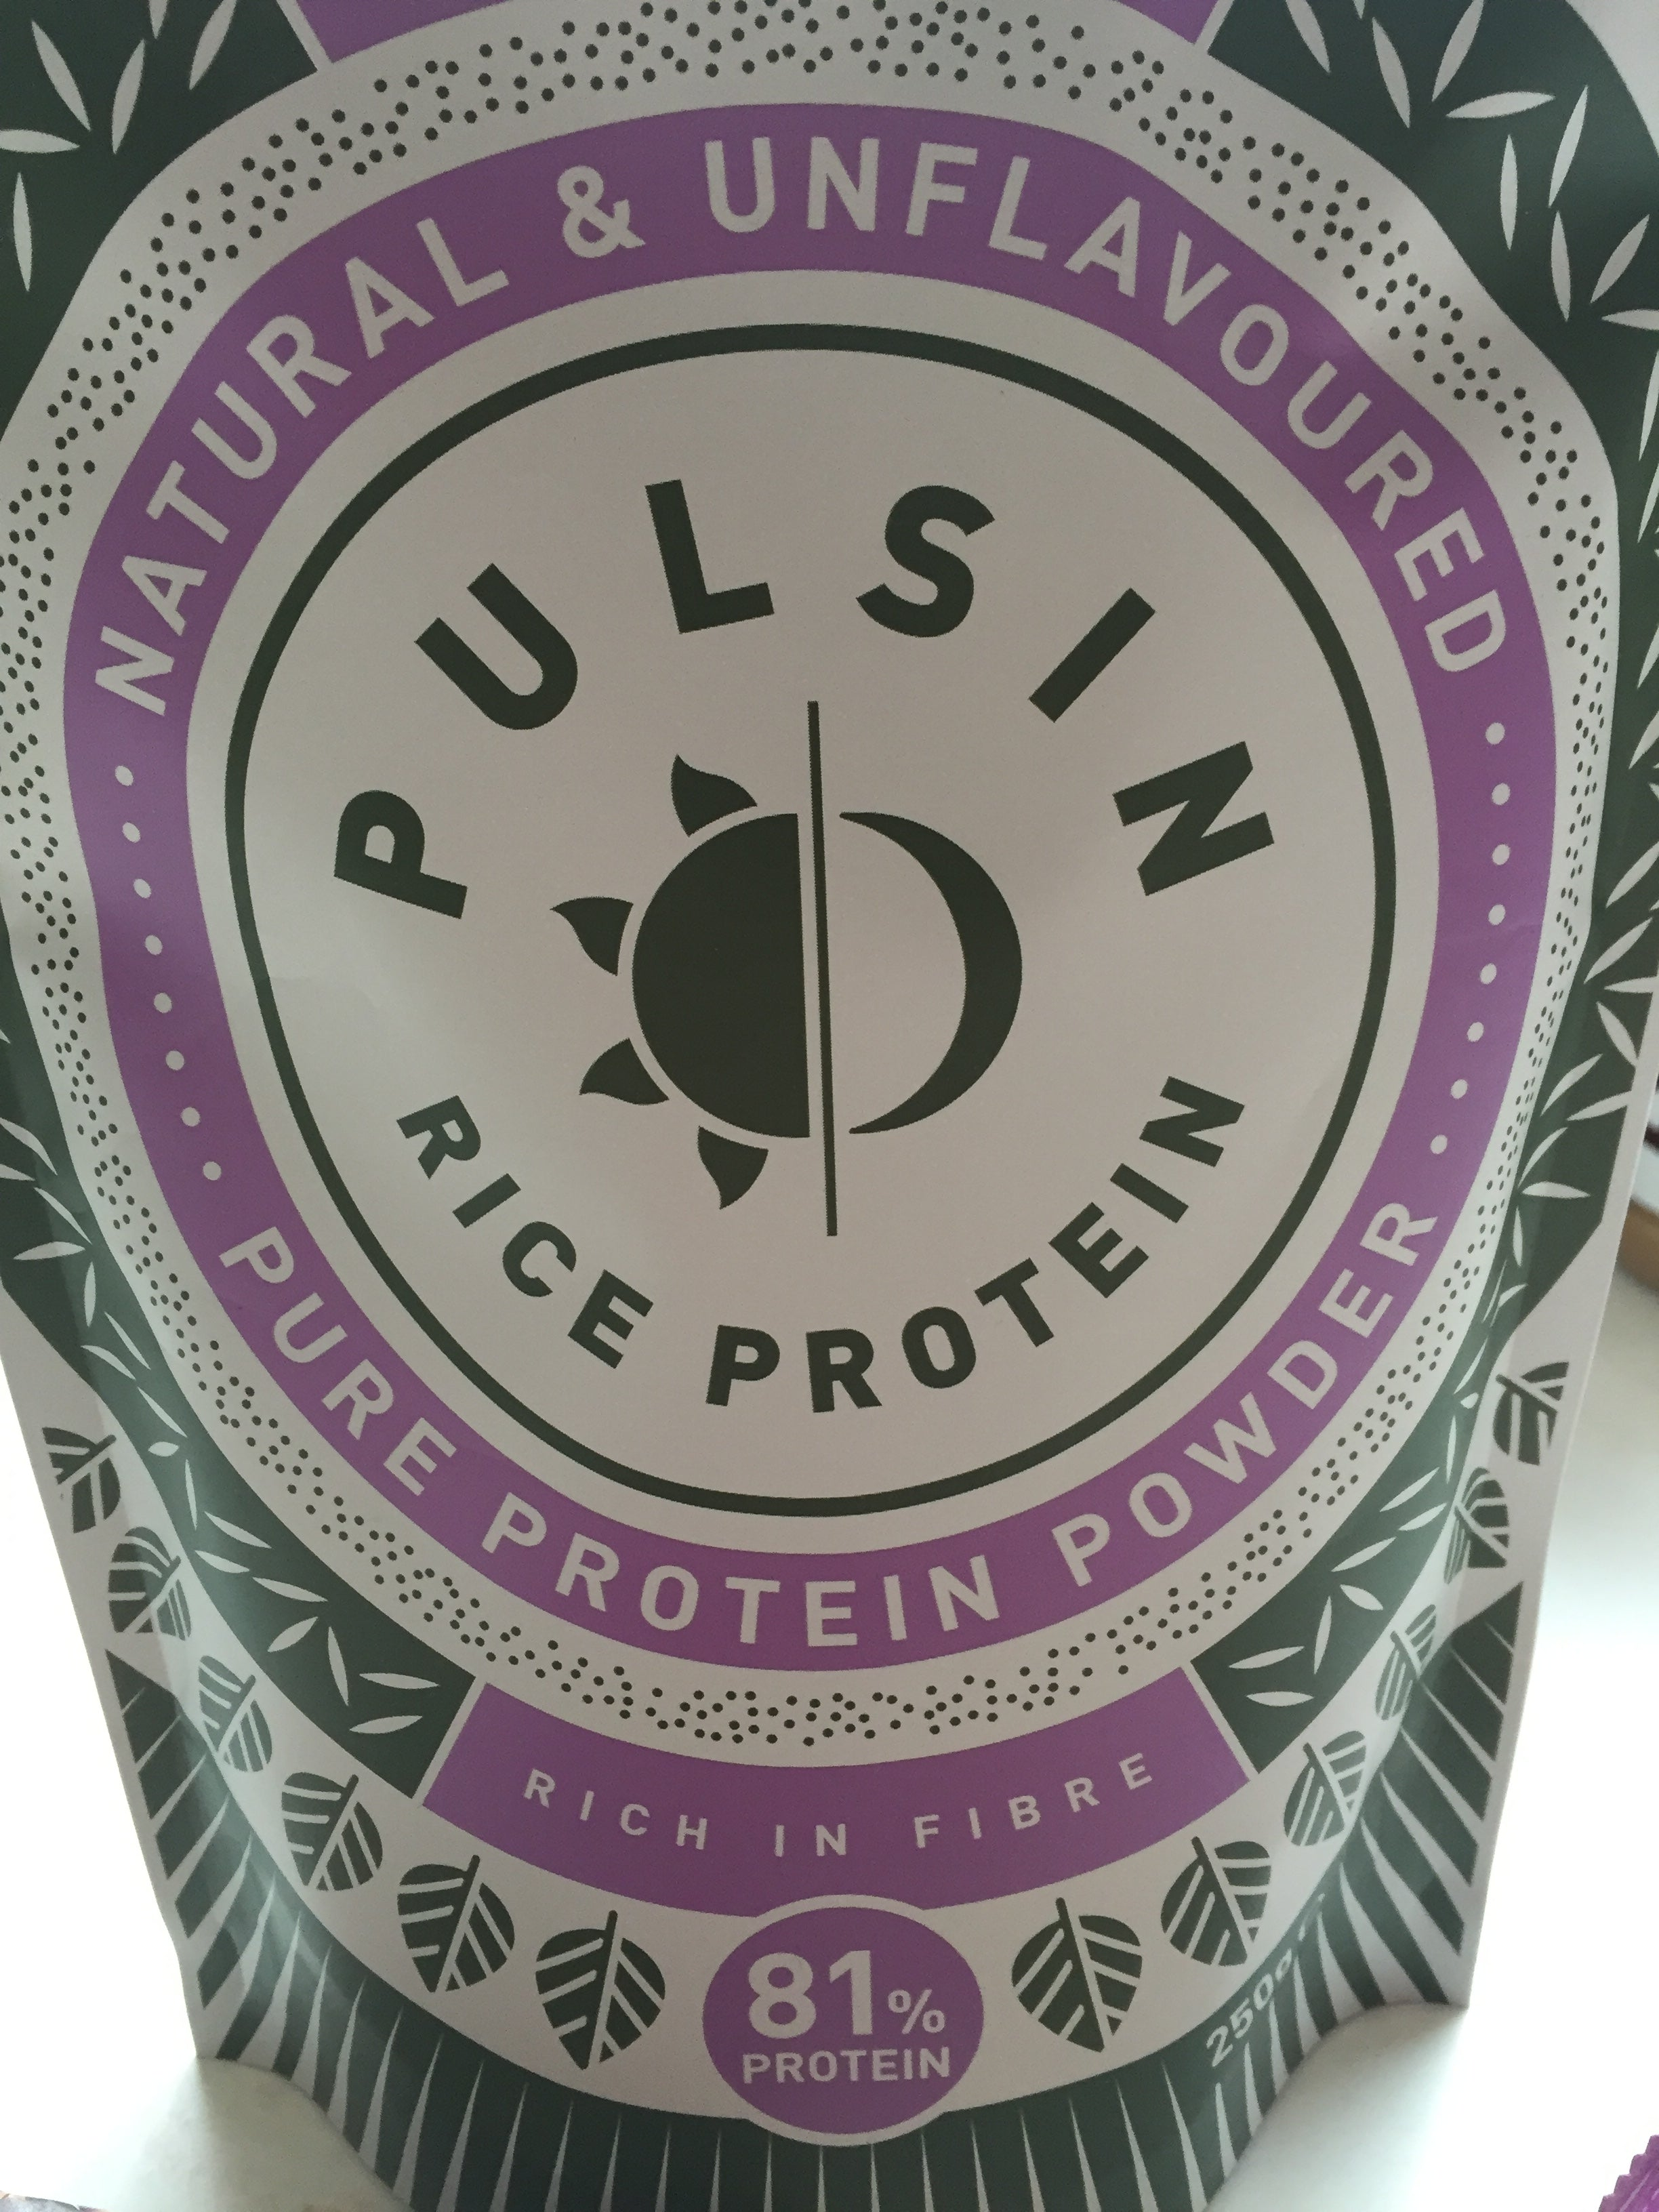 Pulsin rice protein vegan plant based